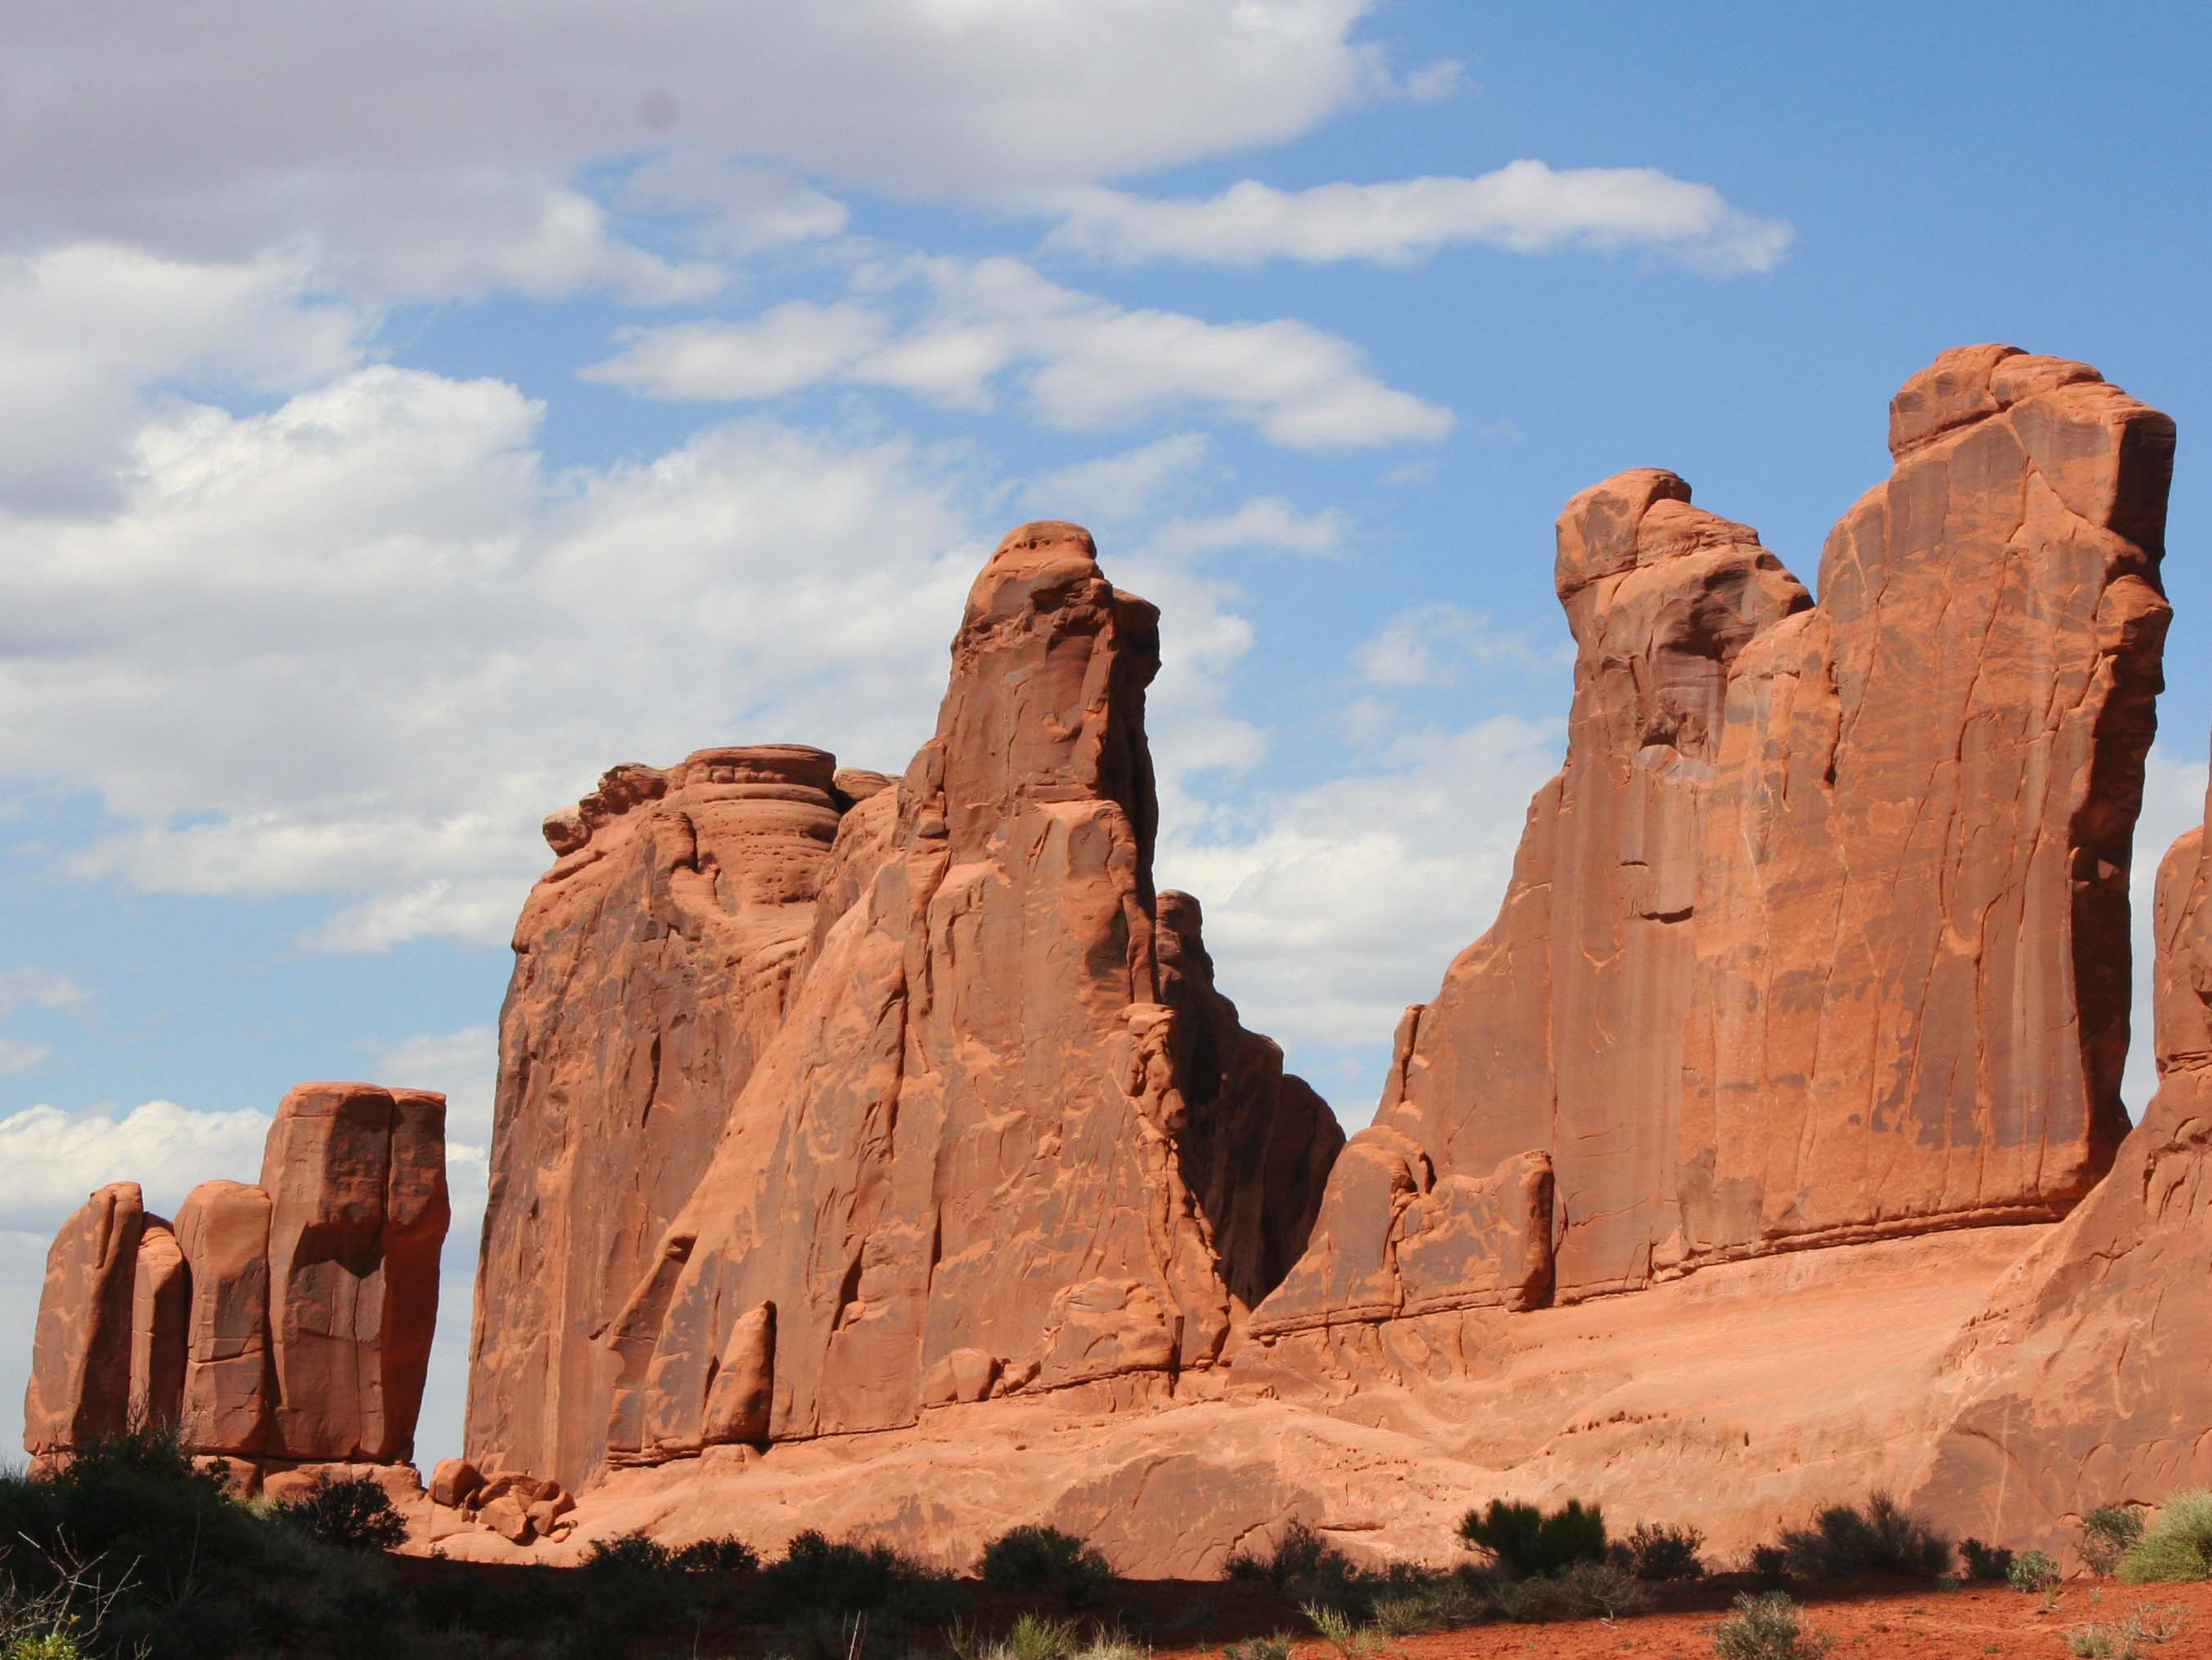 Wall of stone at Arches National Park. Photo by Curtis Mekemson.